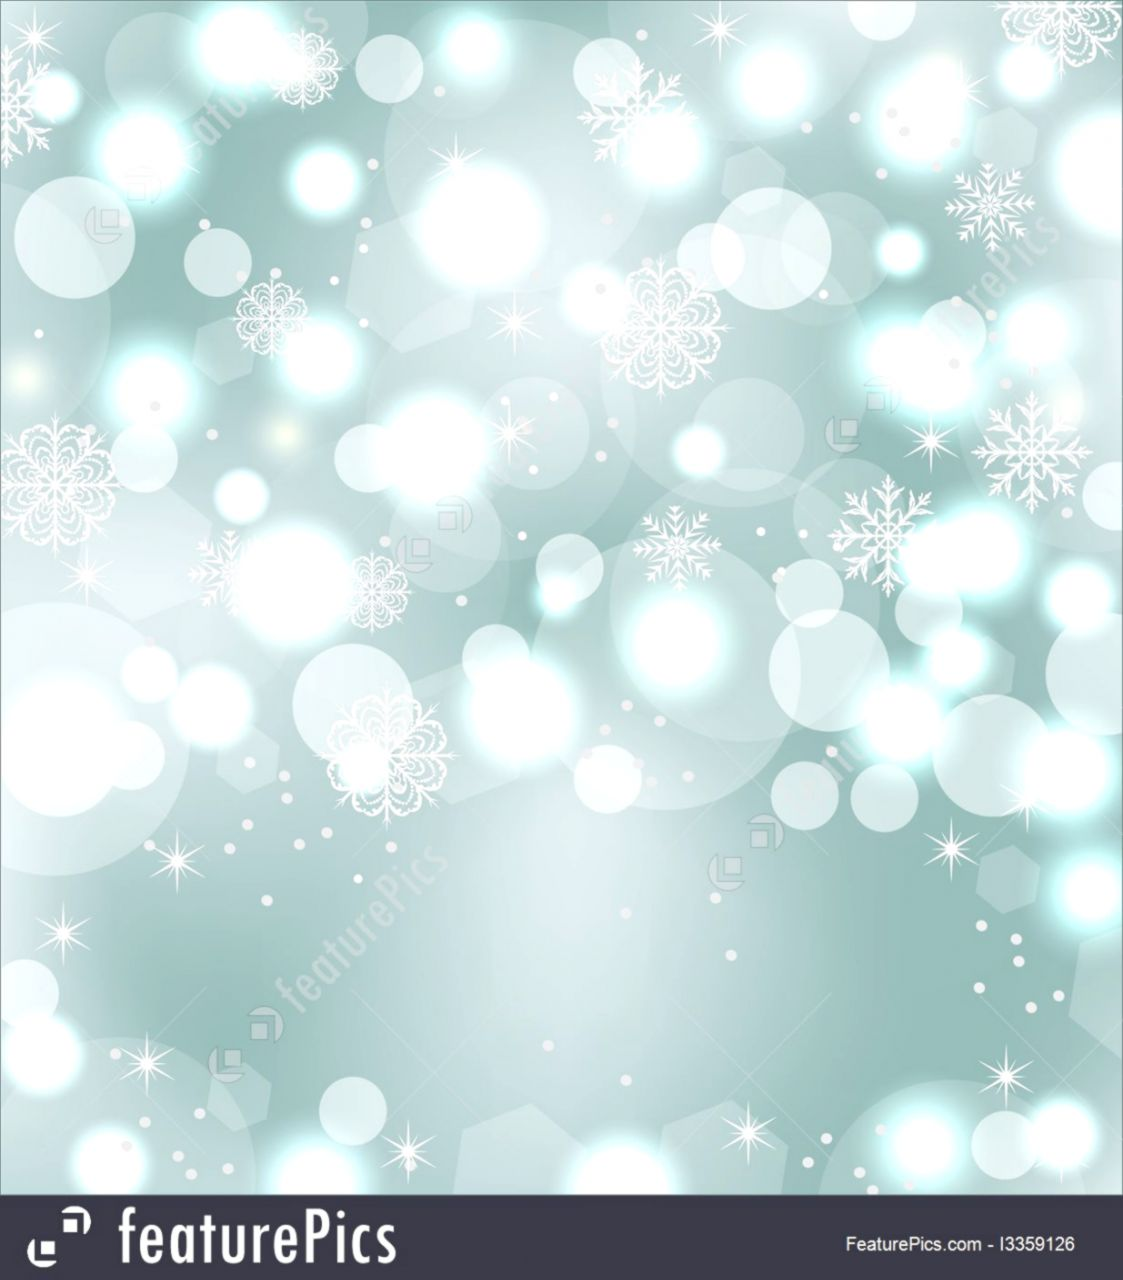 Templates Christmas Cute Wallpaper With Sparkle Snowflakes